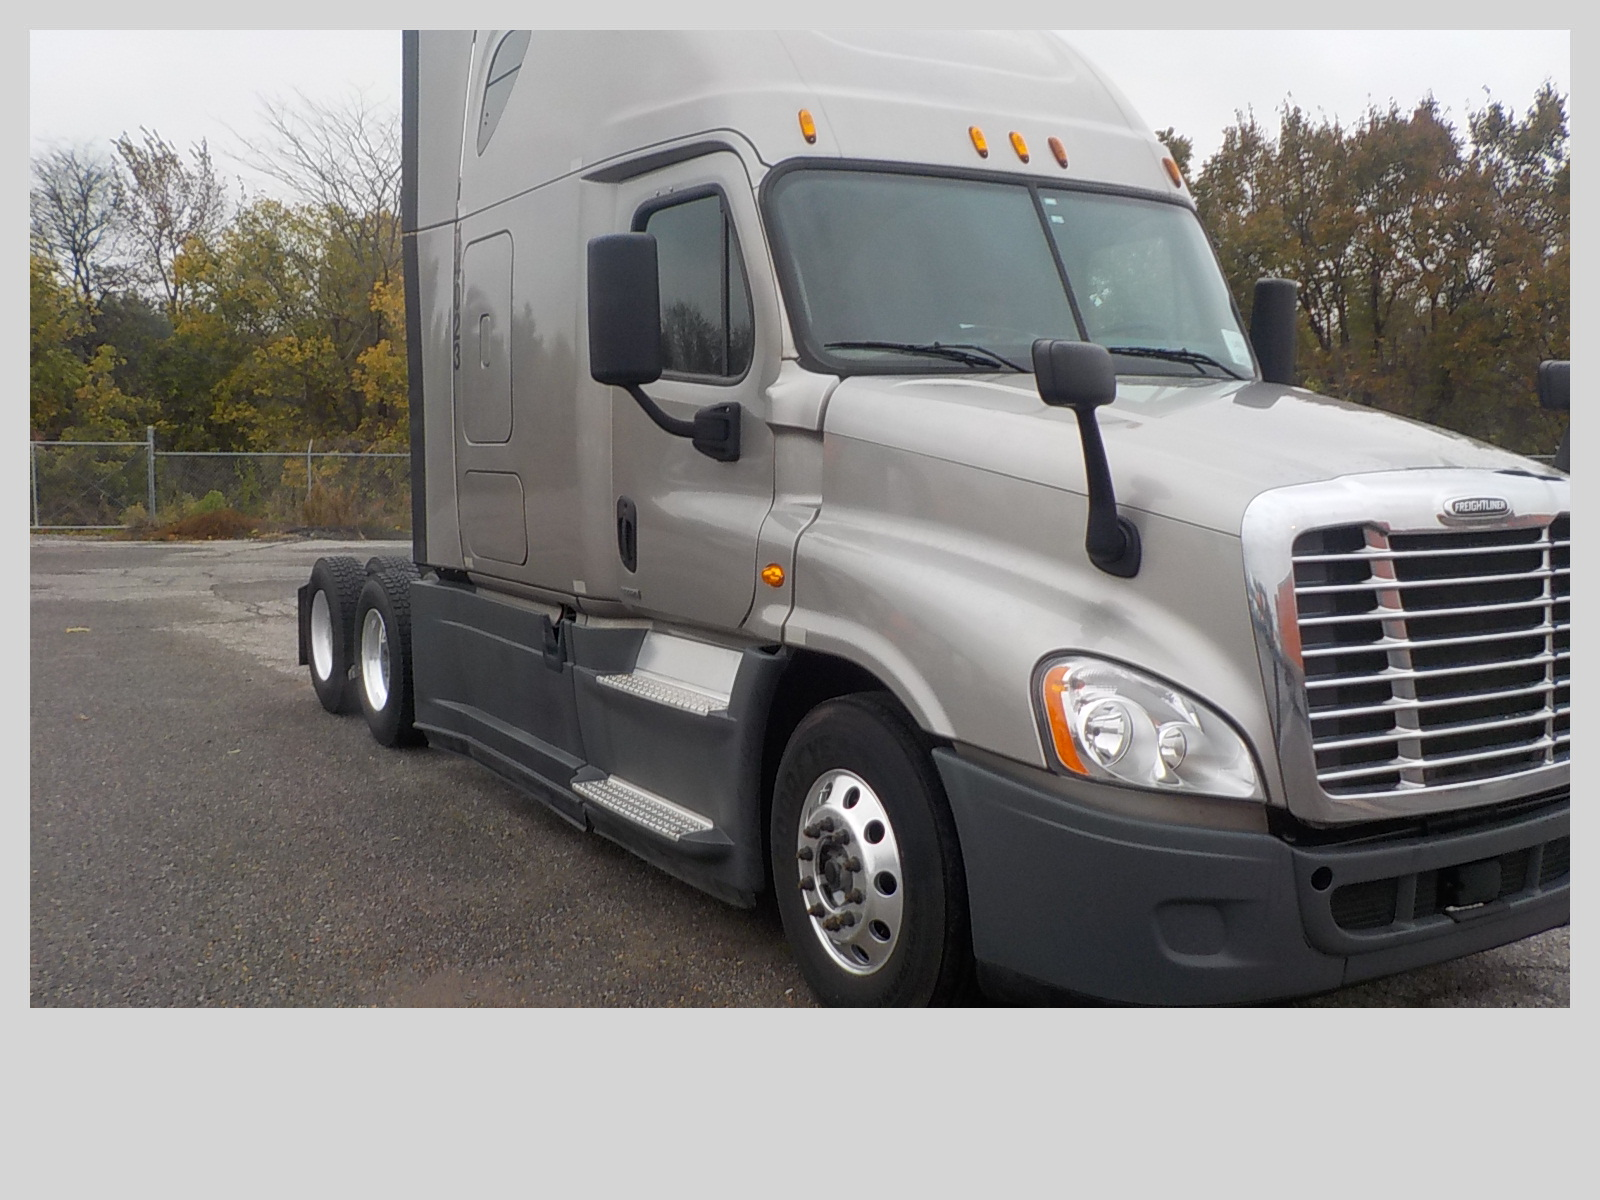 USED 2015 FREIGHTLINER CASCADIA SLEEPER TRUCK #84057